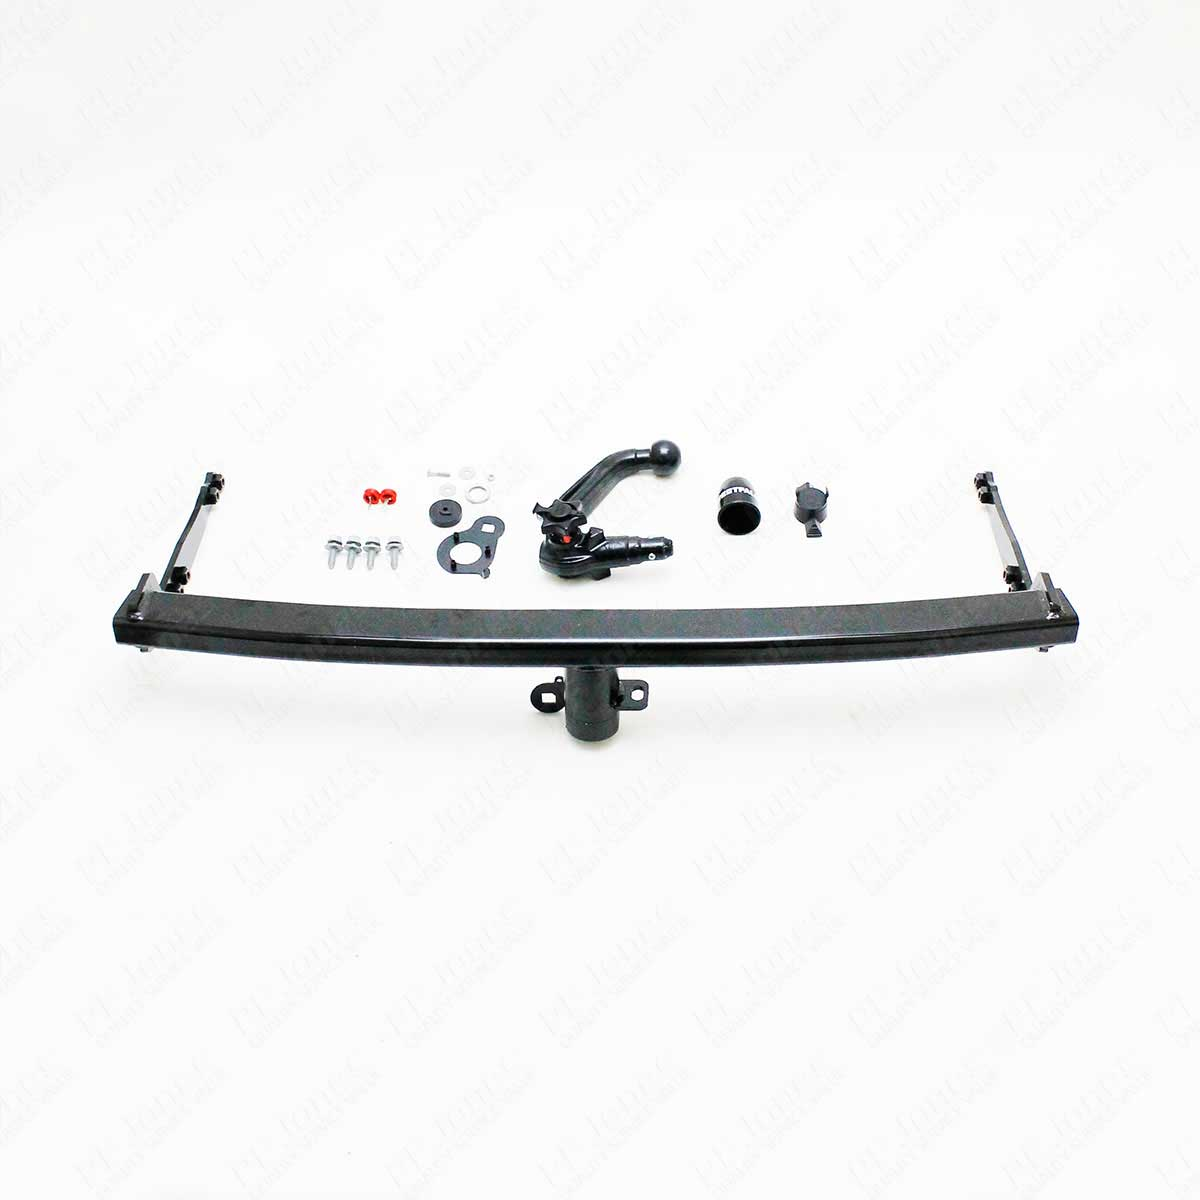 12n 7 Pin Electrics Kit Inc Bypass Relay 13 Trailer Wiring Diagram Uk Skoda Octavia Estate 2013 Onwards Westfalia Detachable Towbar